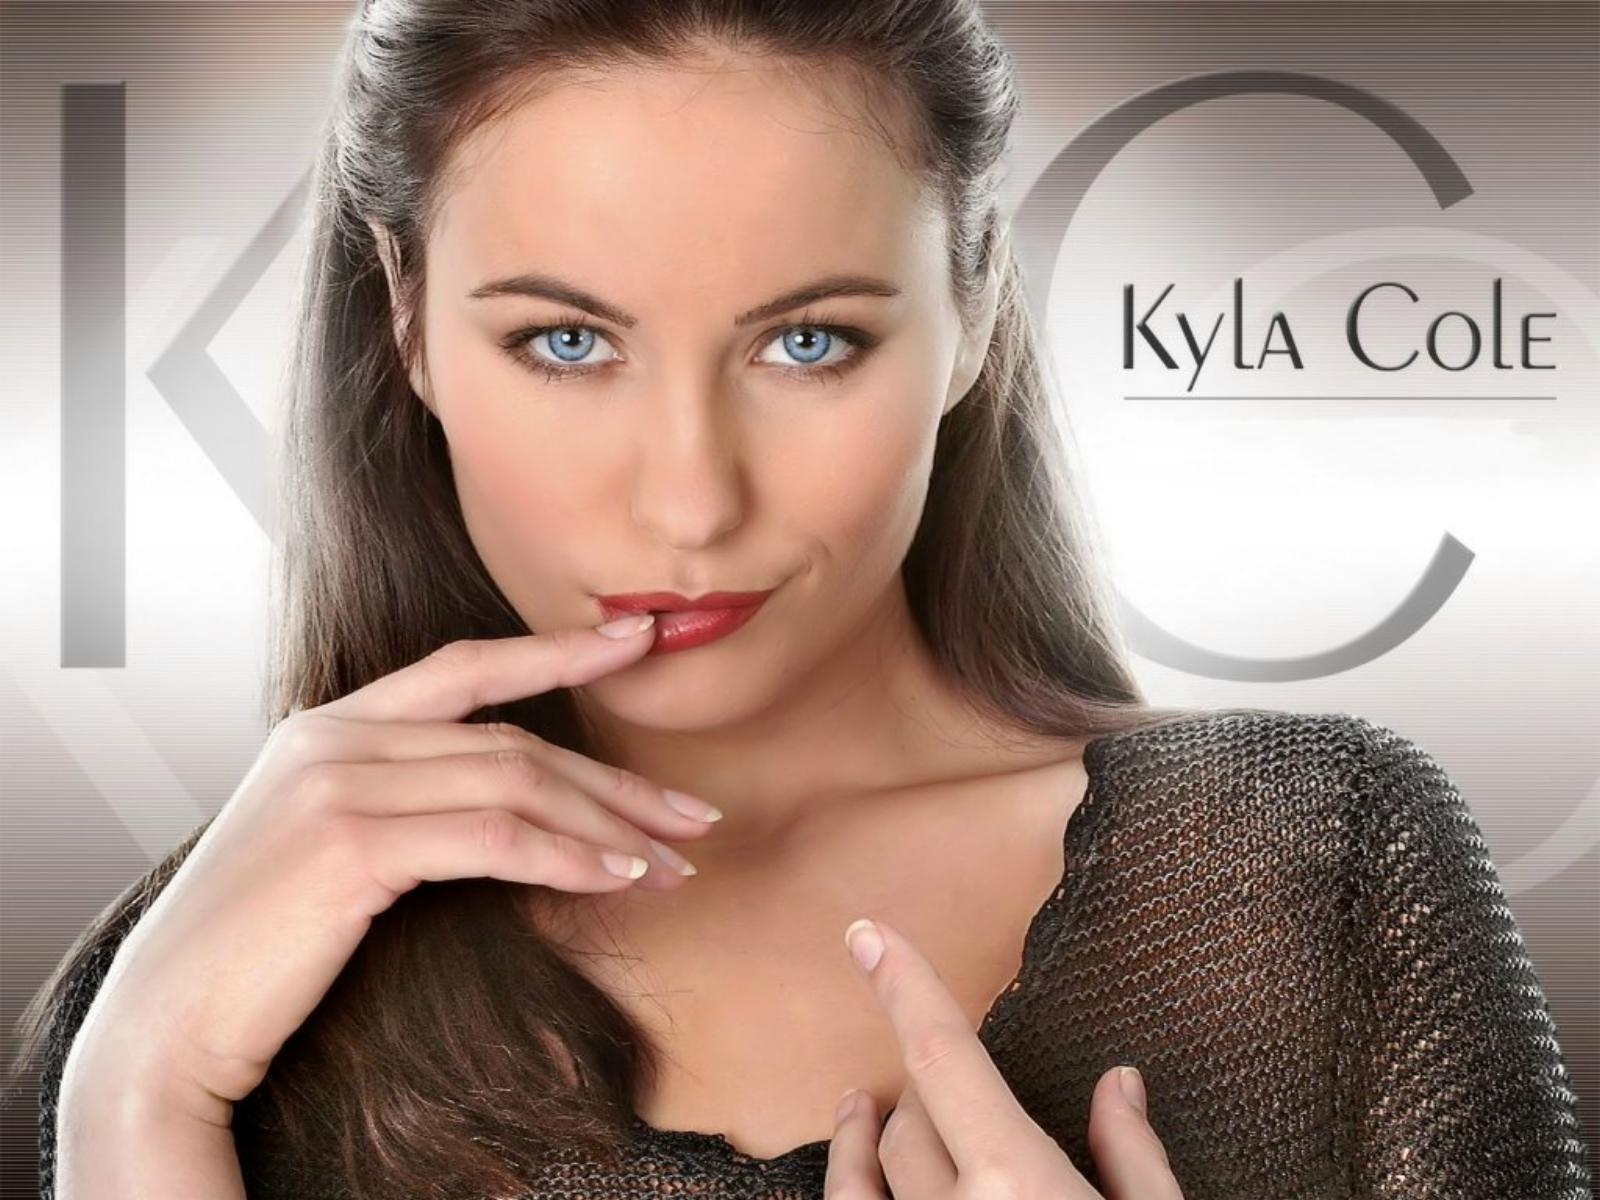 HQ Kyla Cole Wallpapers | File 208.2Kb